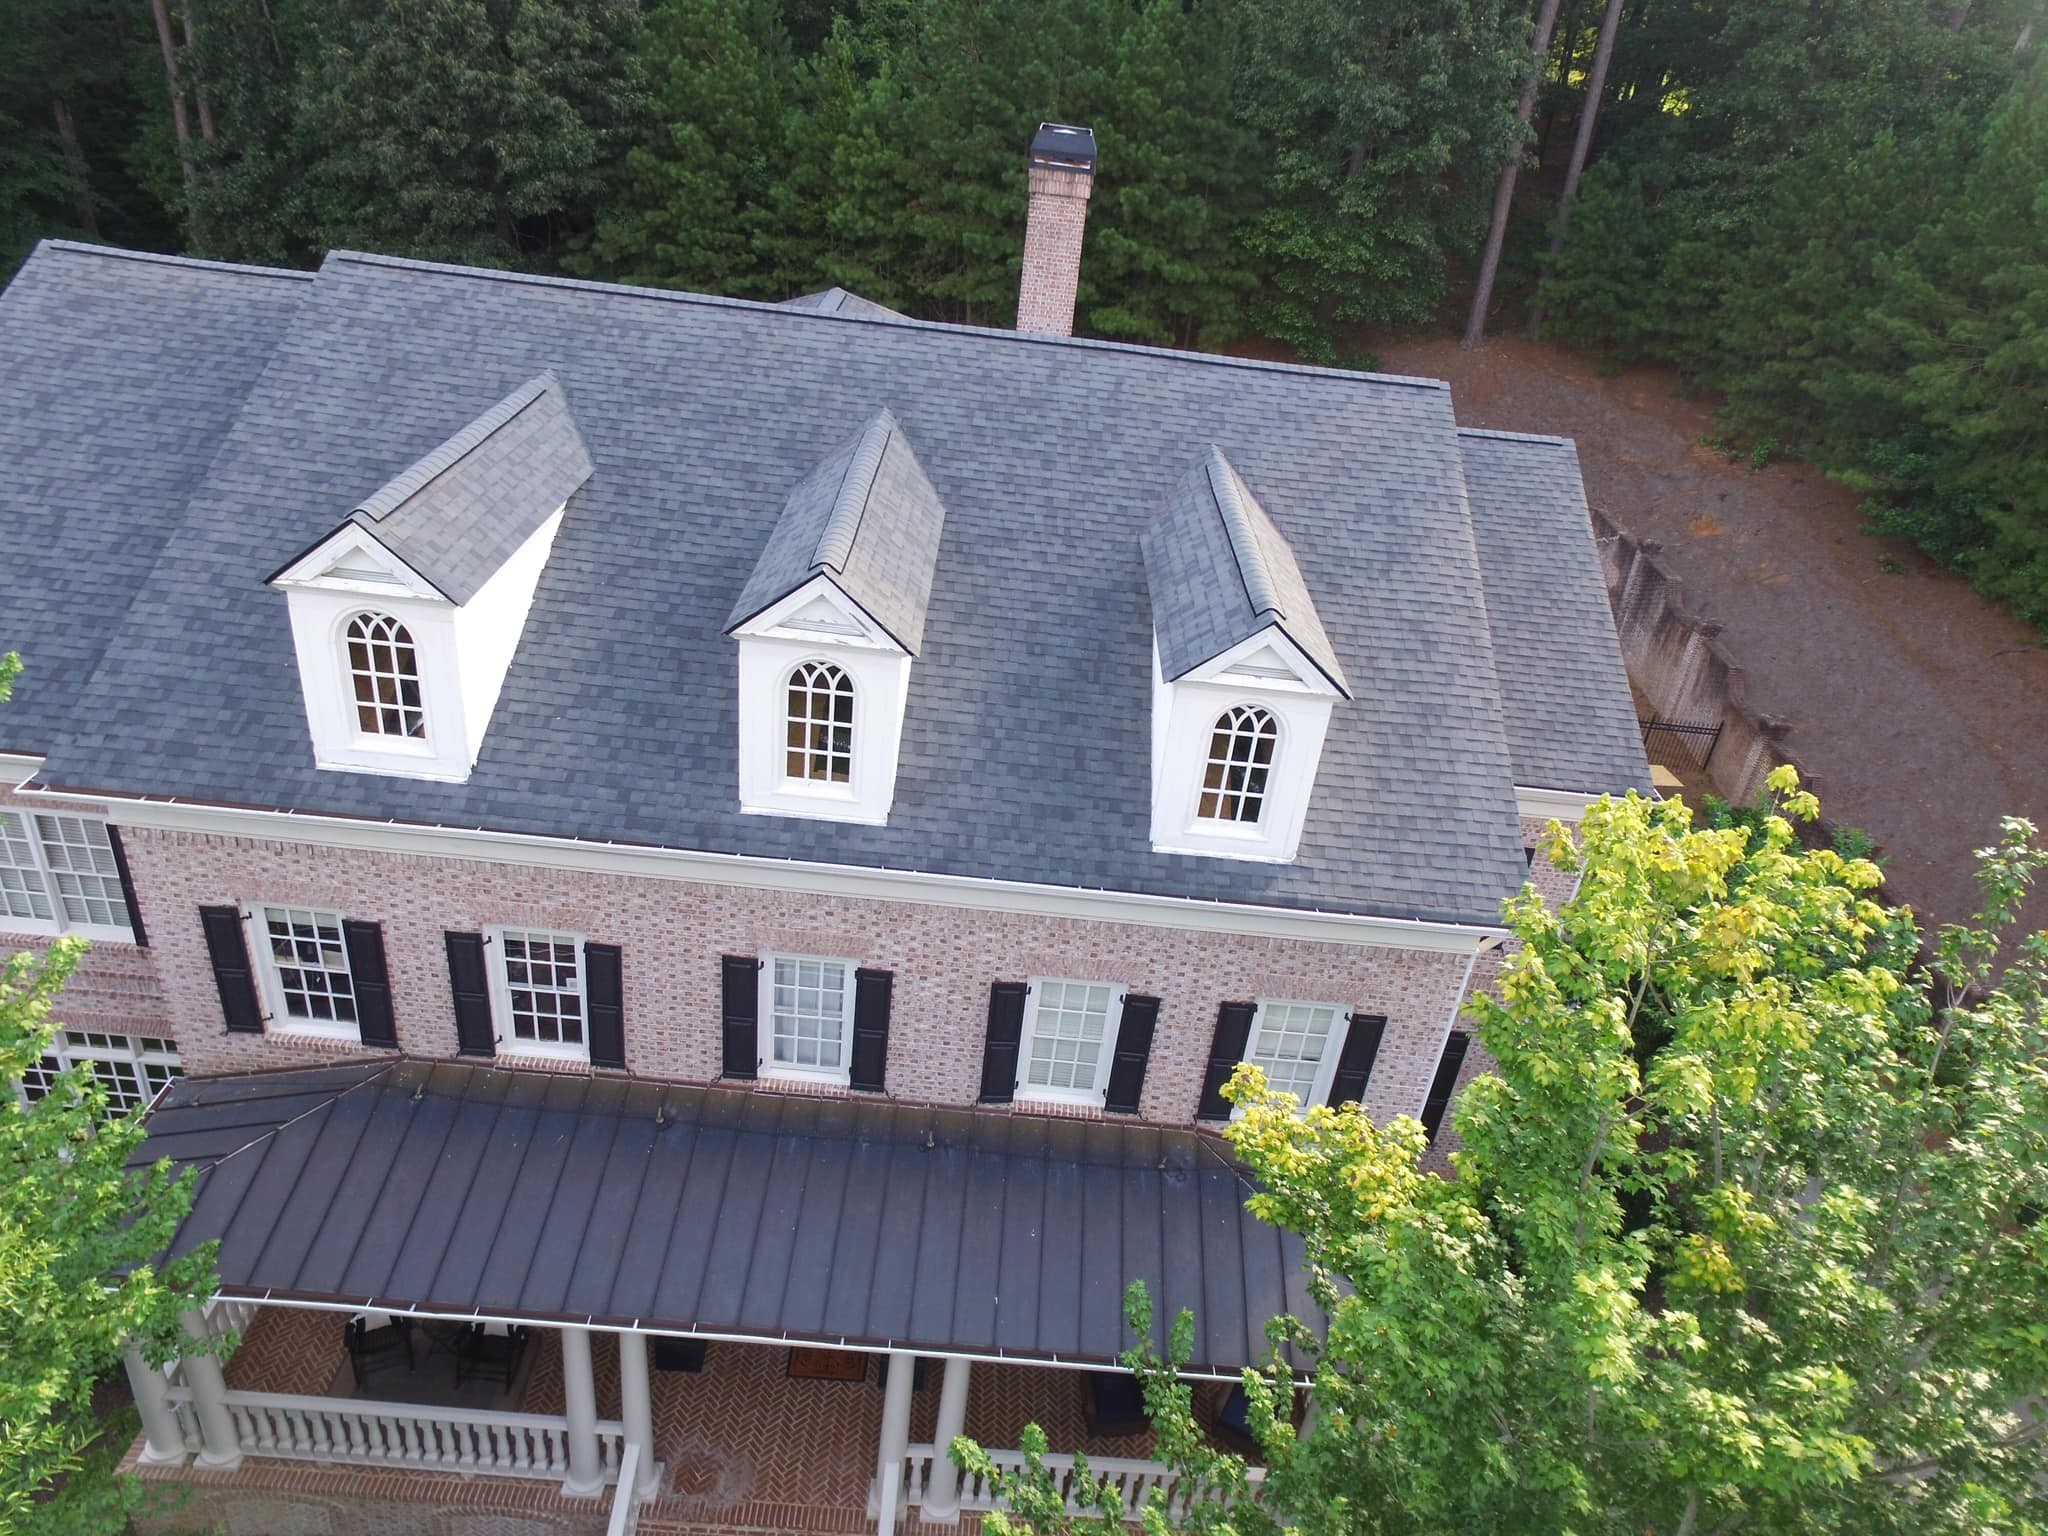 Tear off and install near me Suwanee GA - The Roofing HQ